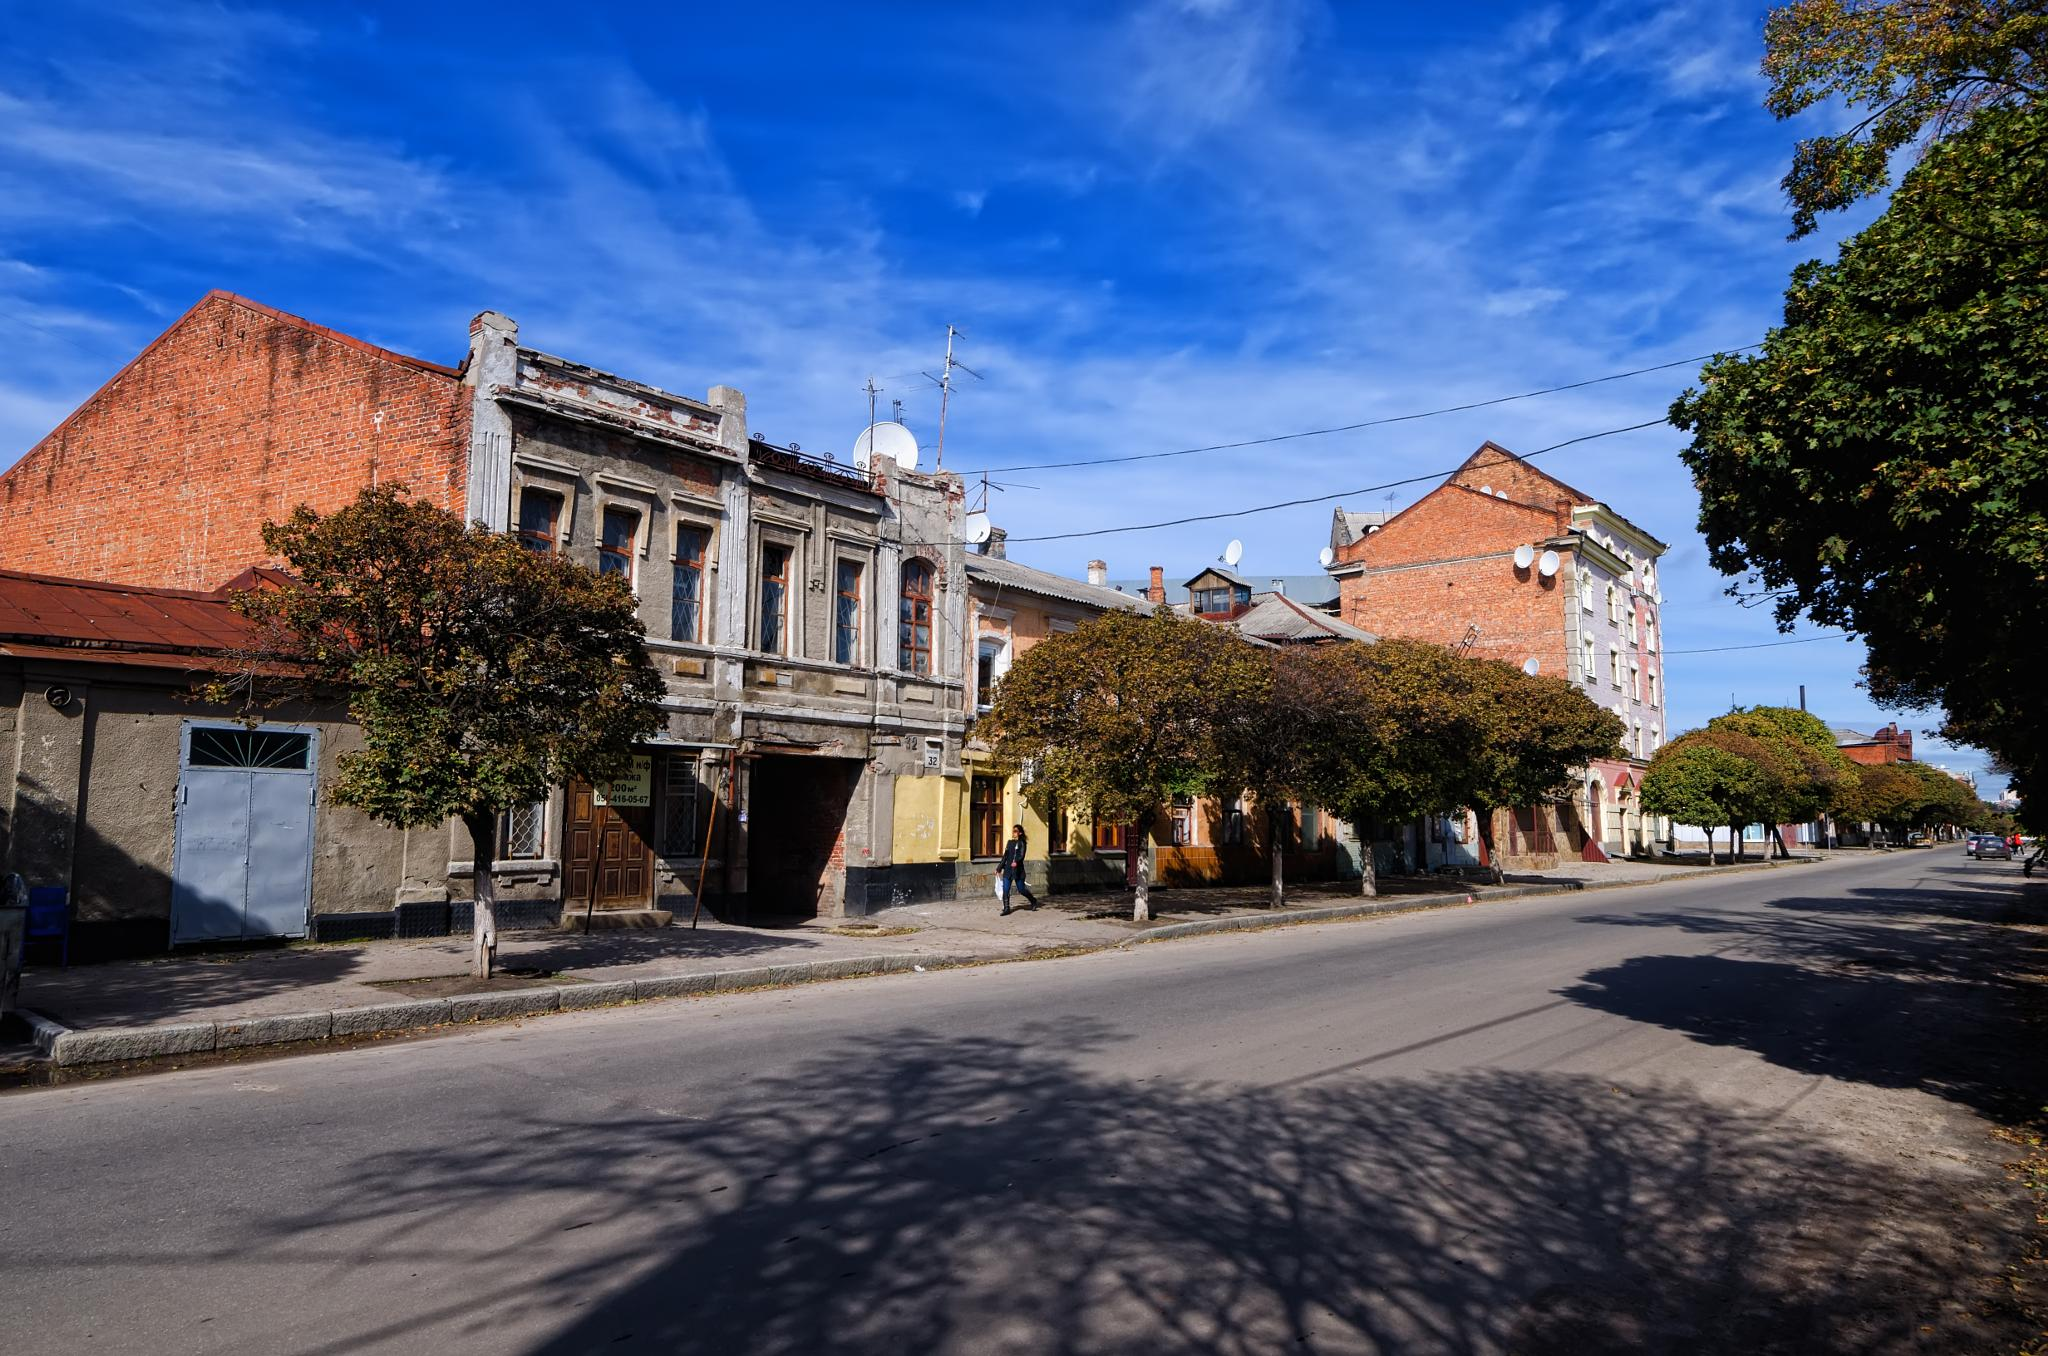 The streets of the old town. Kharkov. Ukraine by Igor Nayda